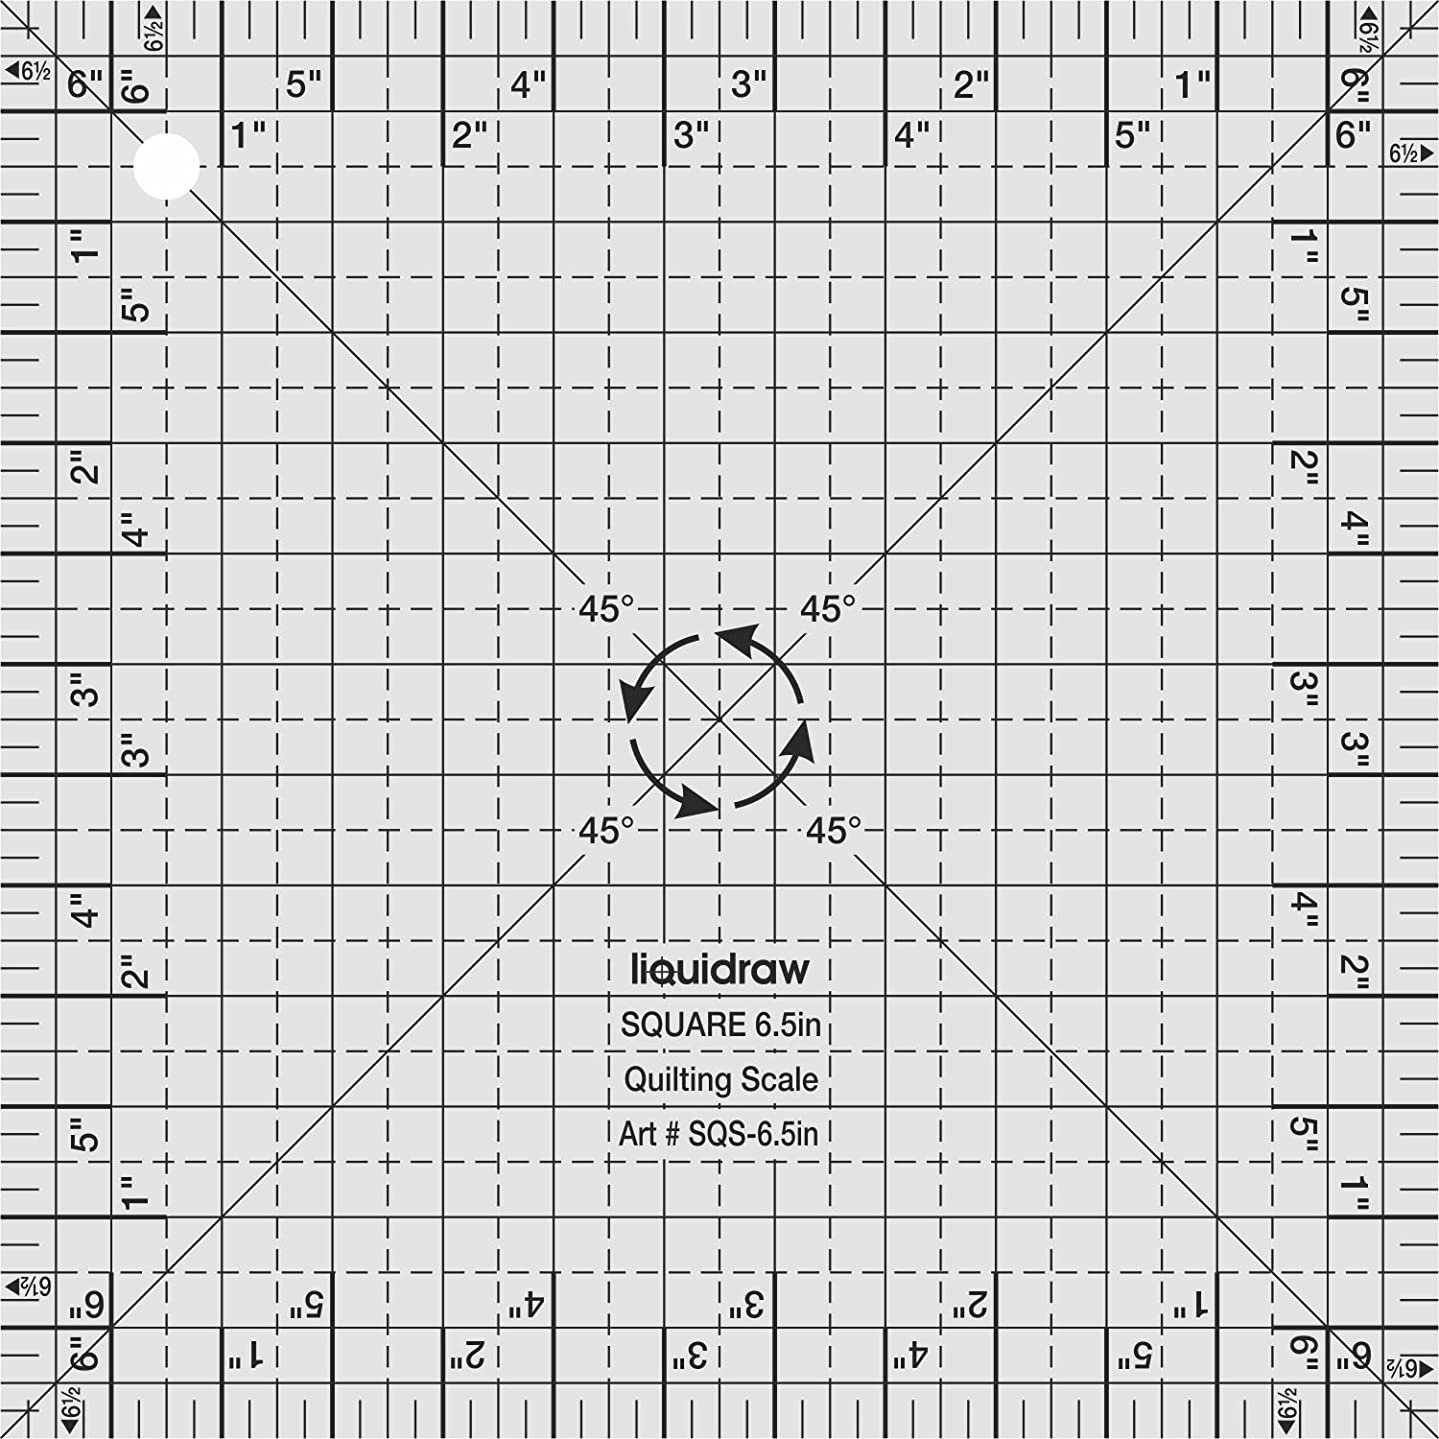 Liquidraw Square Quilting Ruler, Clear Acrylic Template, Imperial 6.5